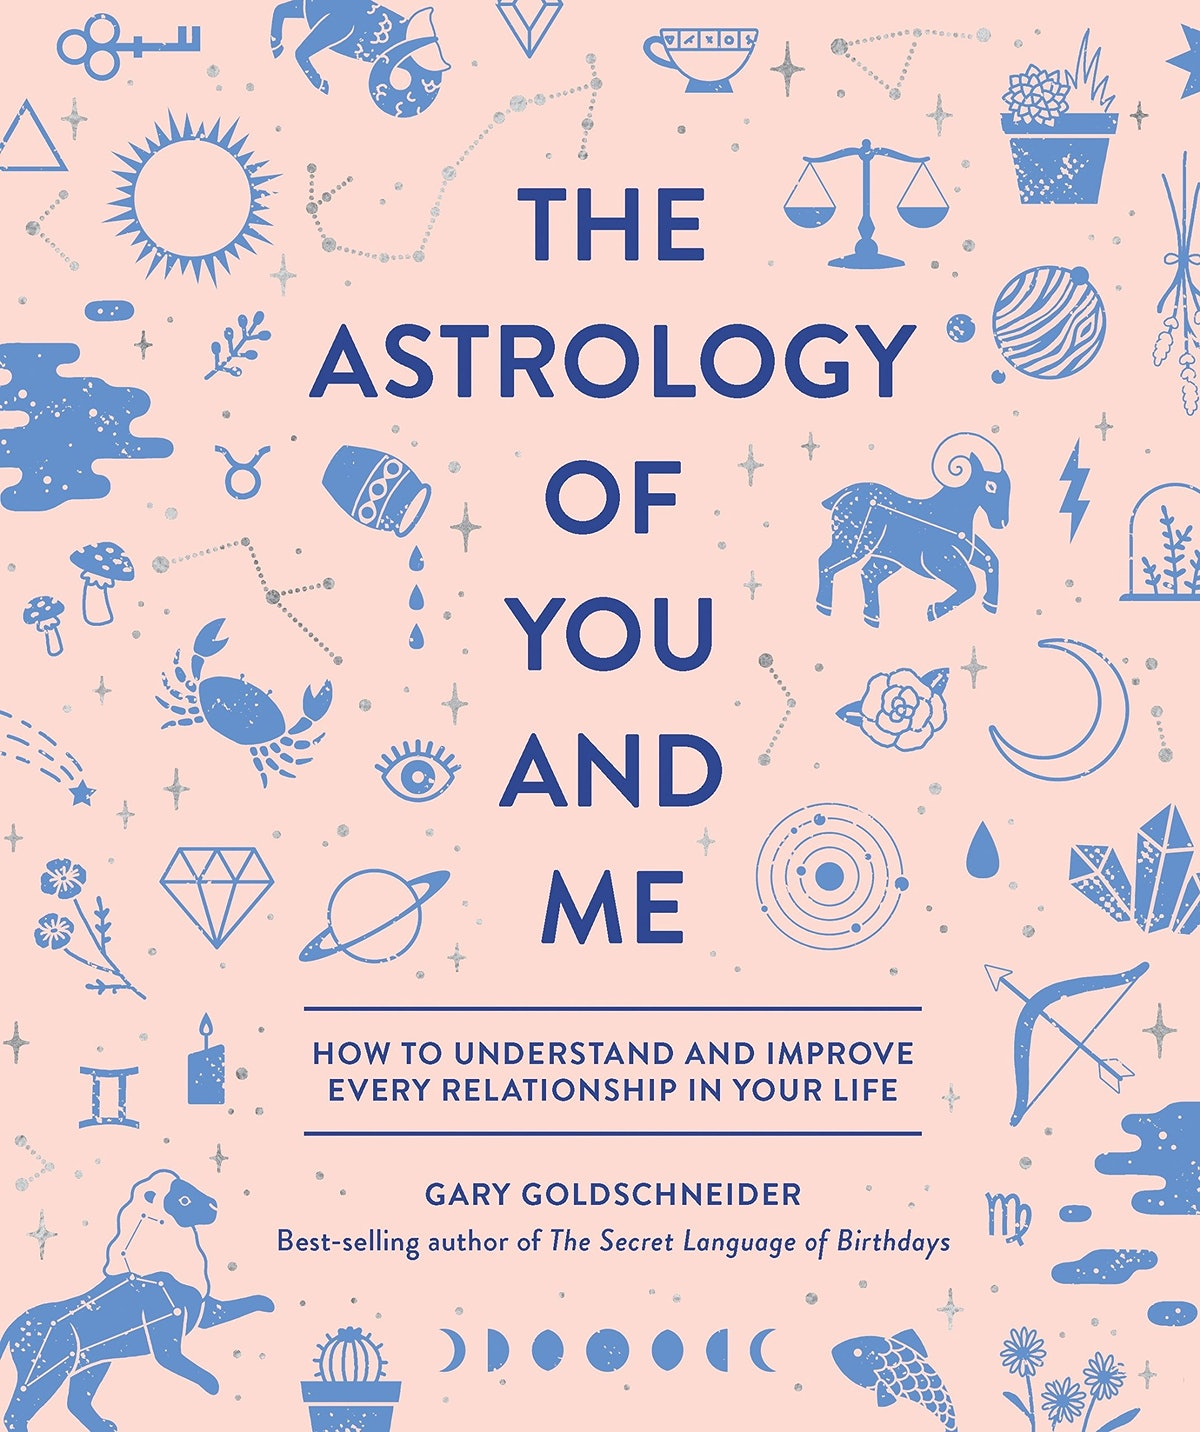 The Astrology of You and Me: How to Understand and Improve Every Relationship in Your Life by Gary G...